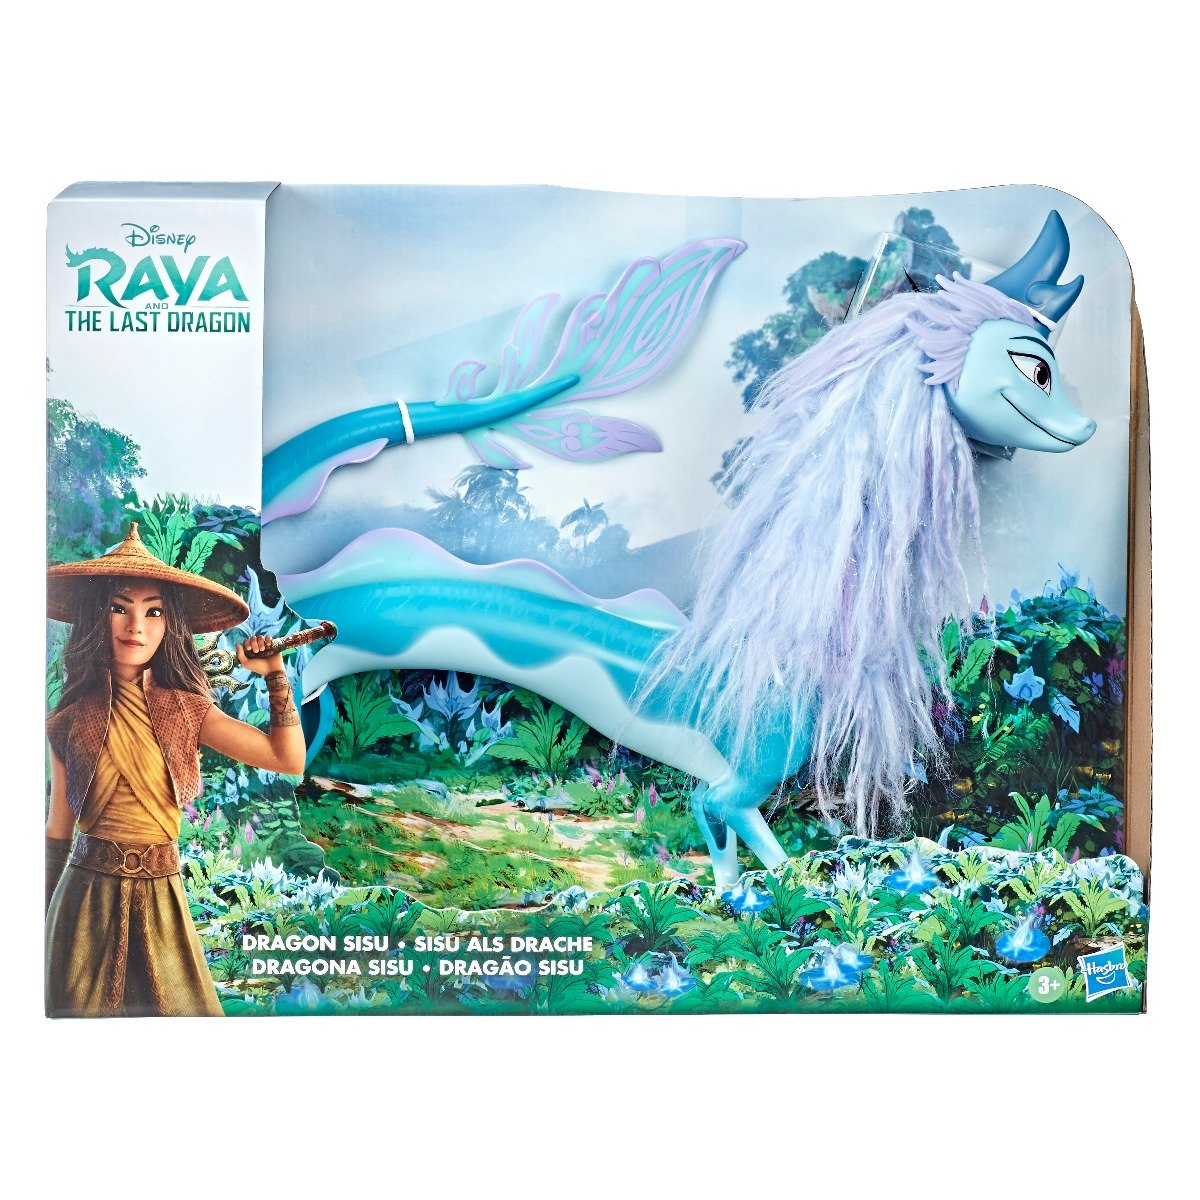 Figurina Disney Raya and the Last Dragon - Dragonul Sisu, 66 cm